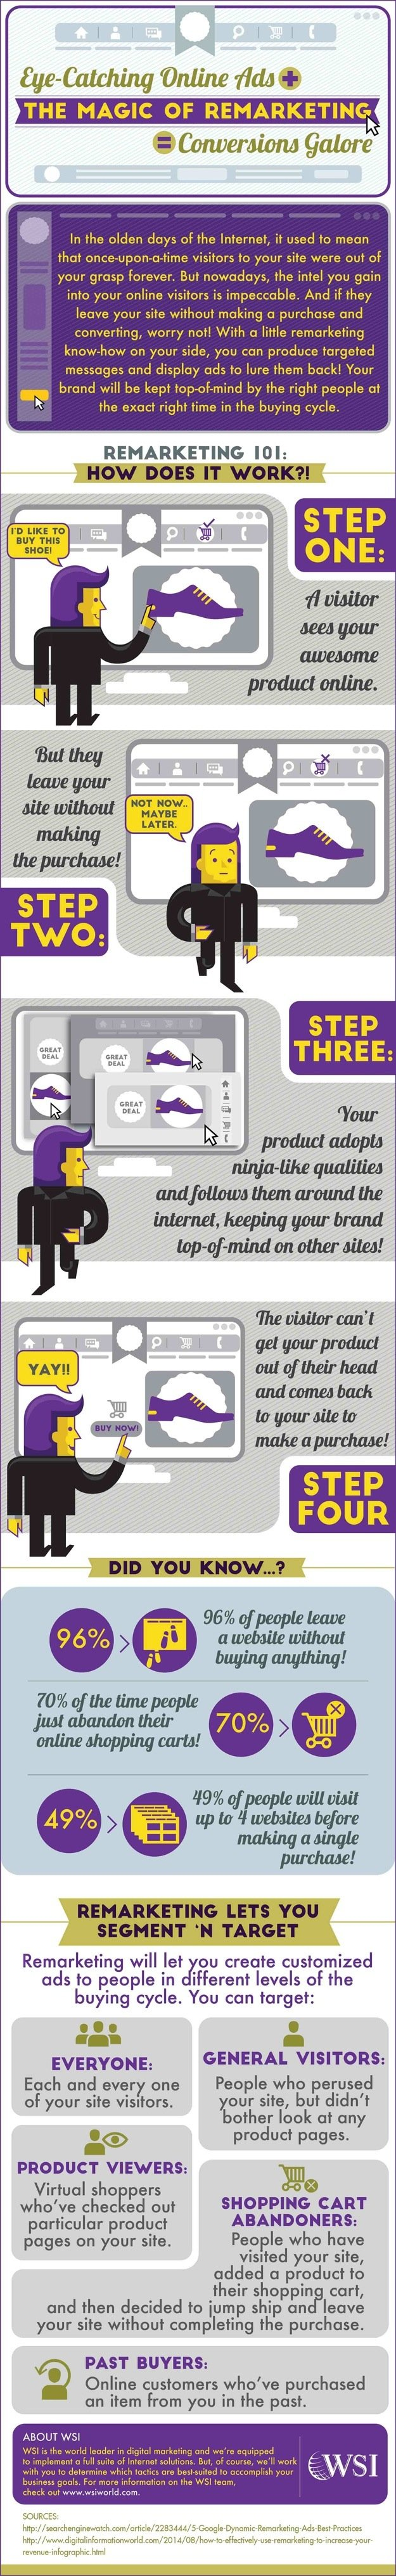 WSI World Blog - [INFOGRAPHIC] Online Ads + Remarketing = Conversions Galore Full Infographic